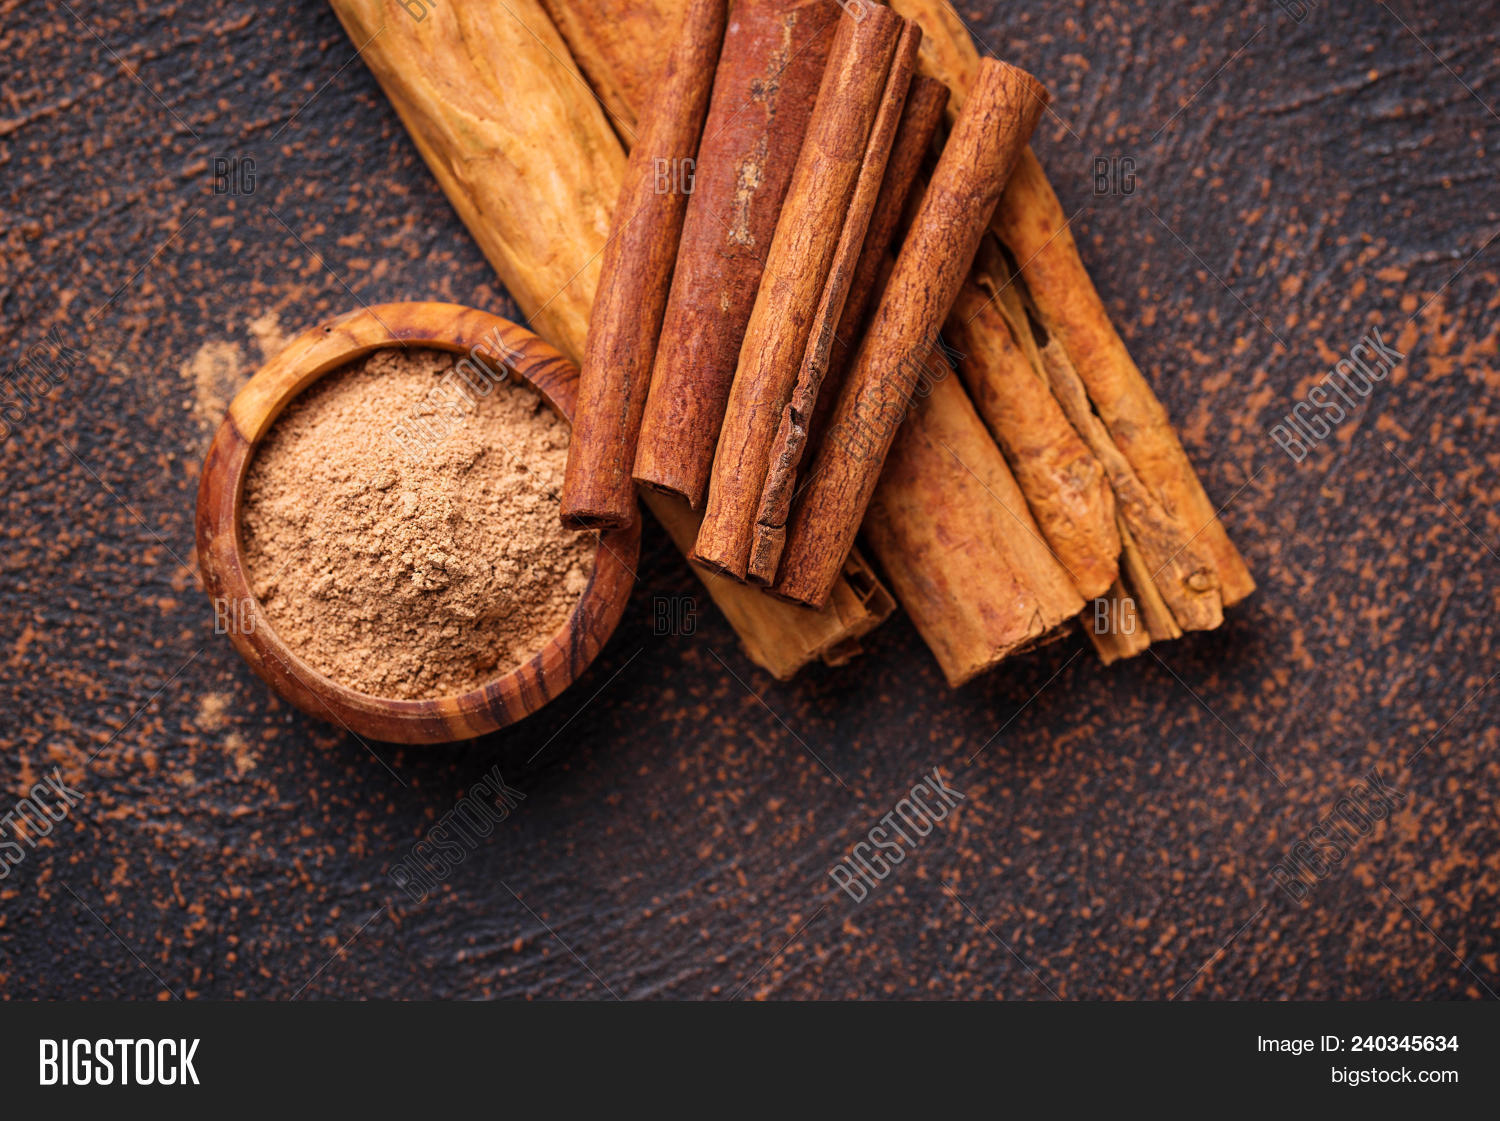 ceylon vs cassia not all cinnamon is created equal - HD 1500×1121